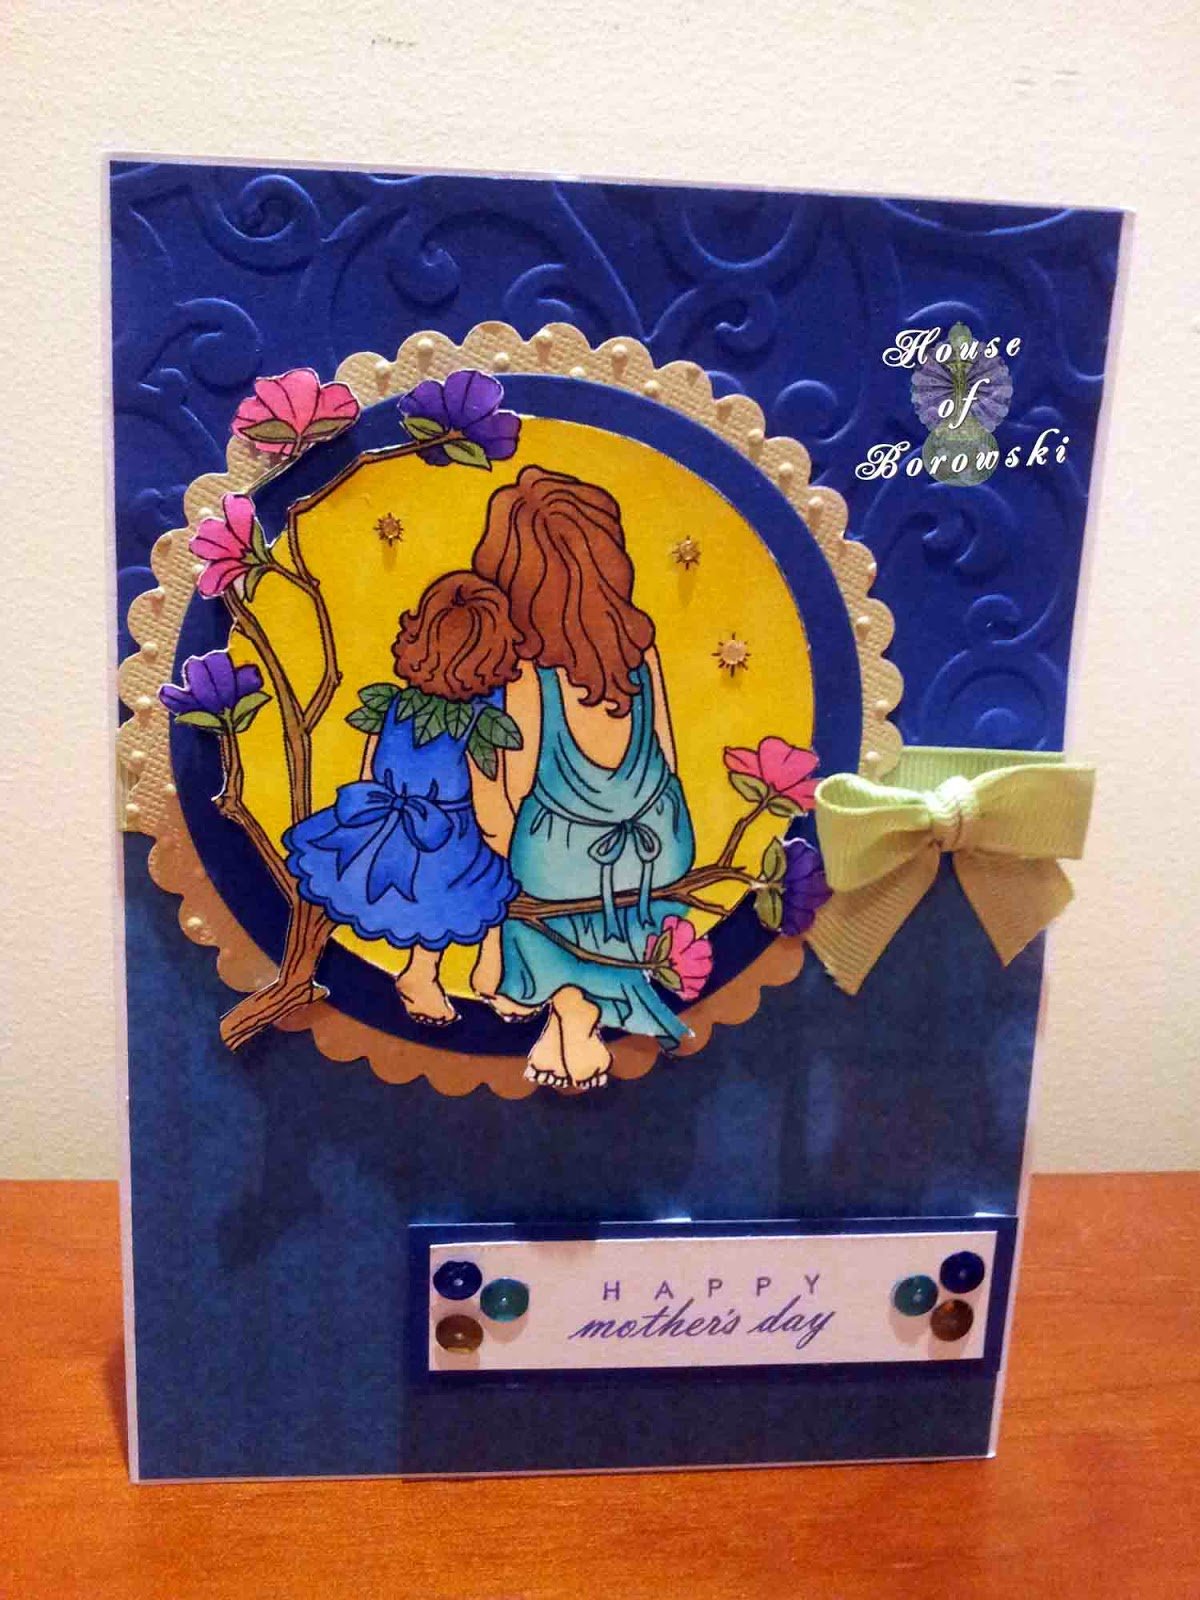 HOB Elizabeth O Dulemba Coloring Page Mother and Child,Papertrey Ink Fillable Frames #4 Mini Stamp Set for Sentiment, Copics, Spellbinders Scalloped Circle, Spellbinders Standard Circle, Kaisercraft Grosgrain Green Ribbon,Cuttlebug Swiss Dots,Sizzix with Hero Arts stamp and emboss flourish folder set